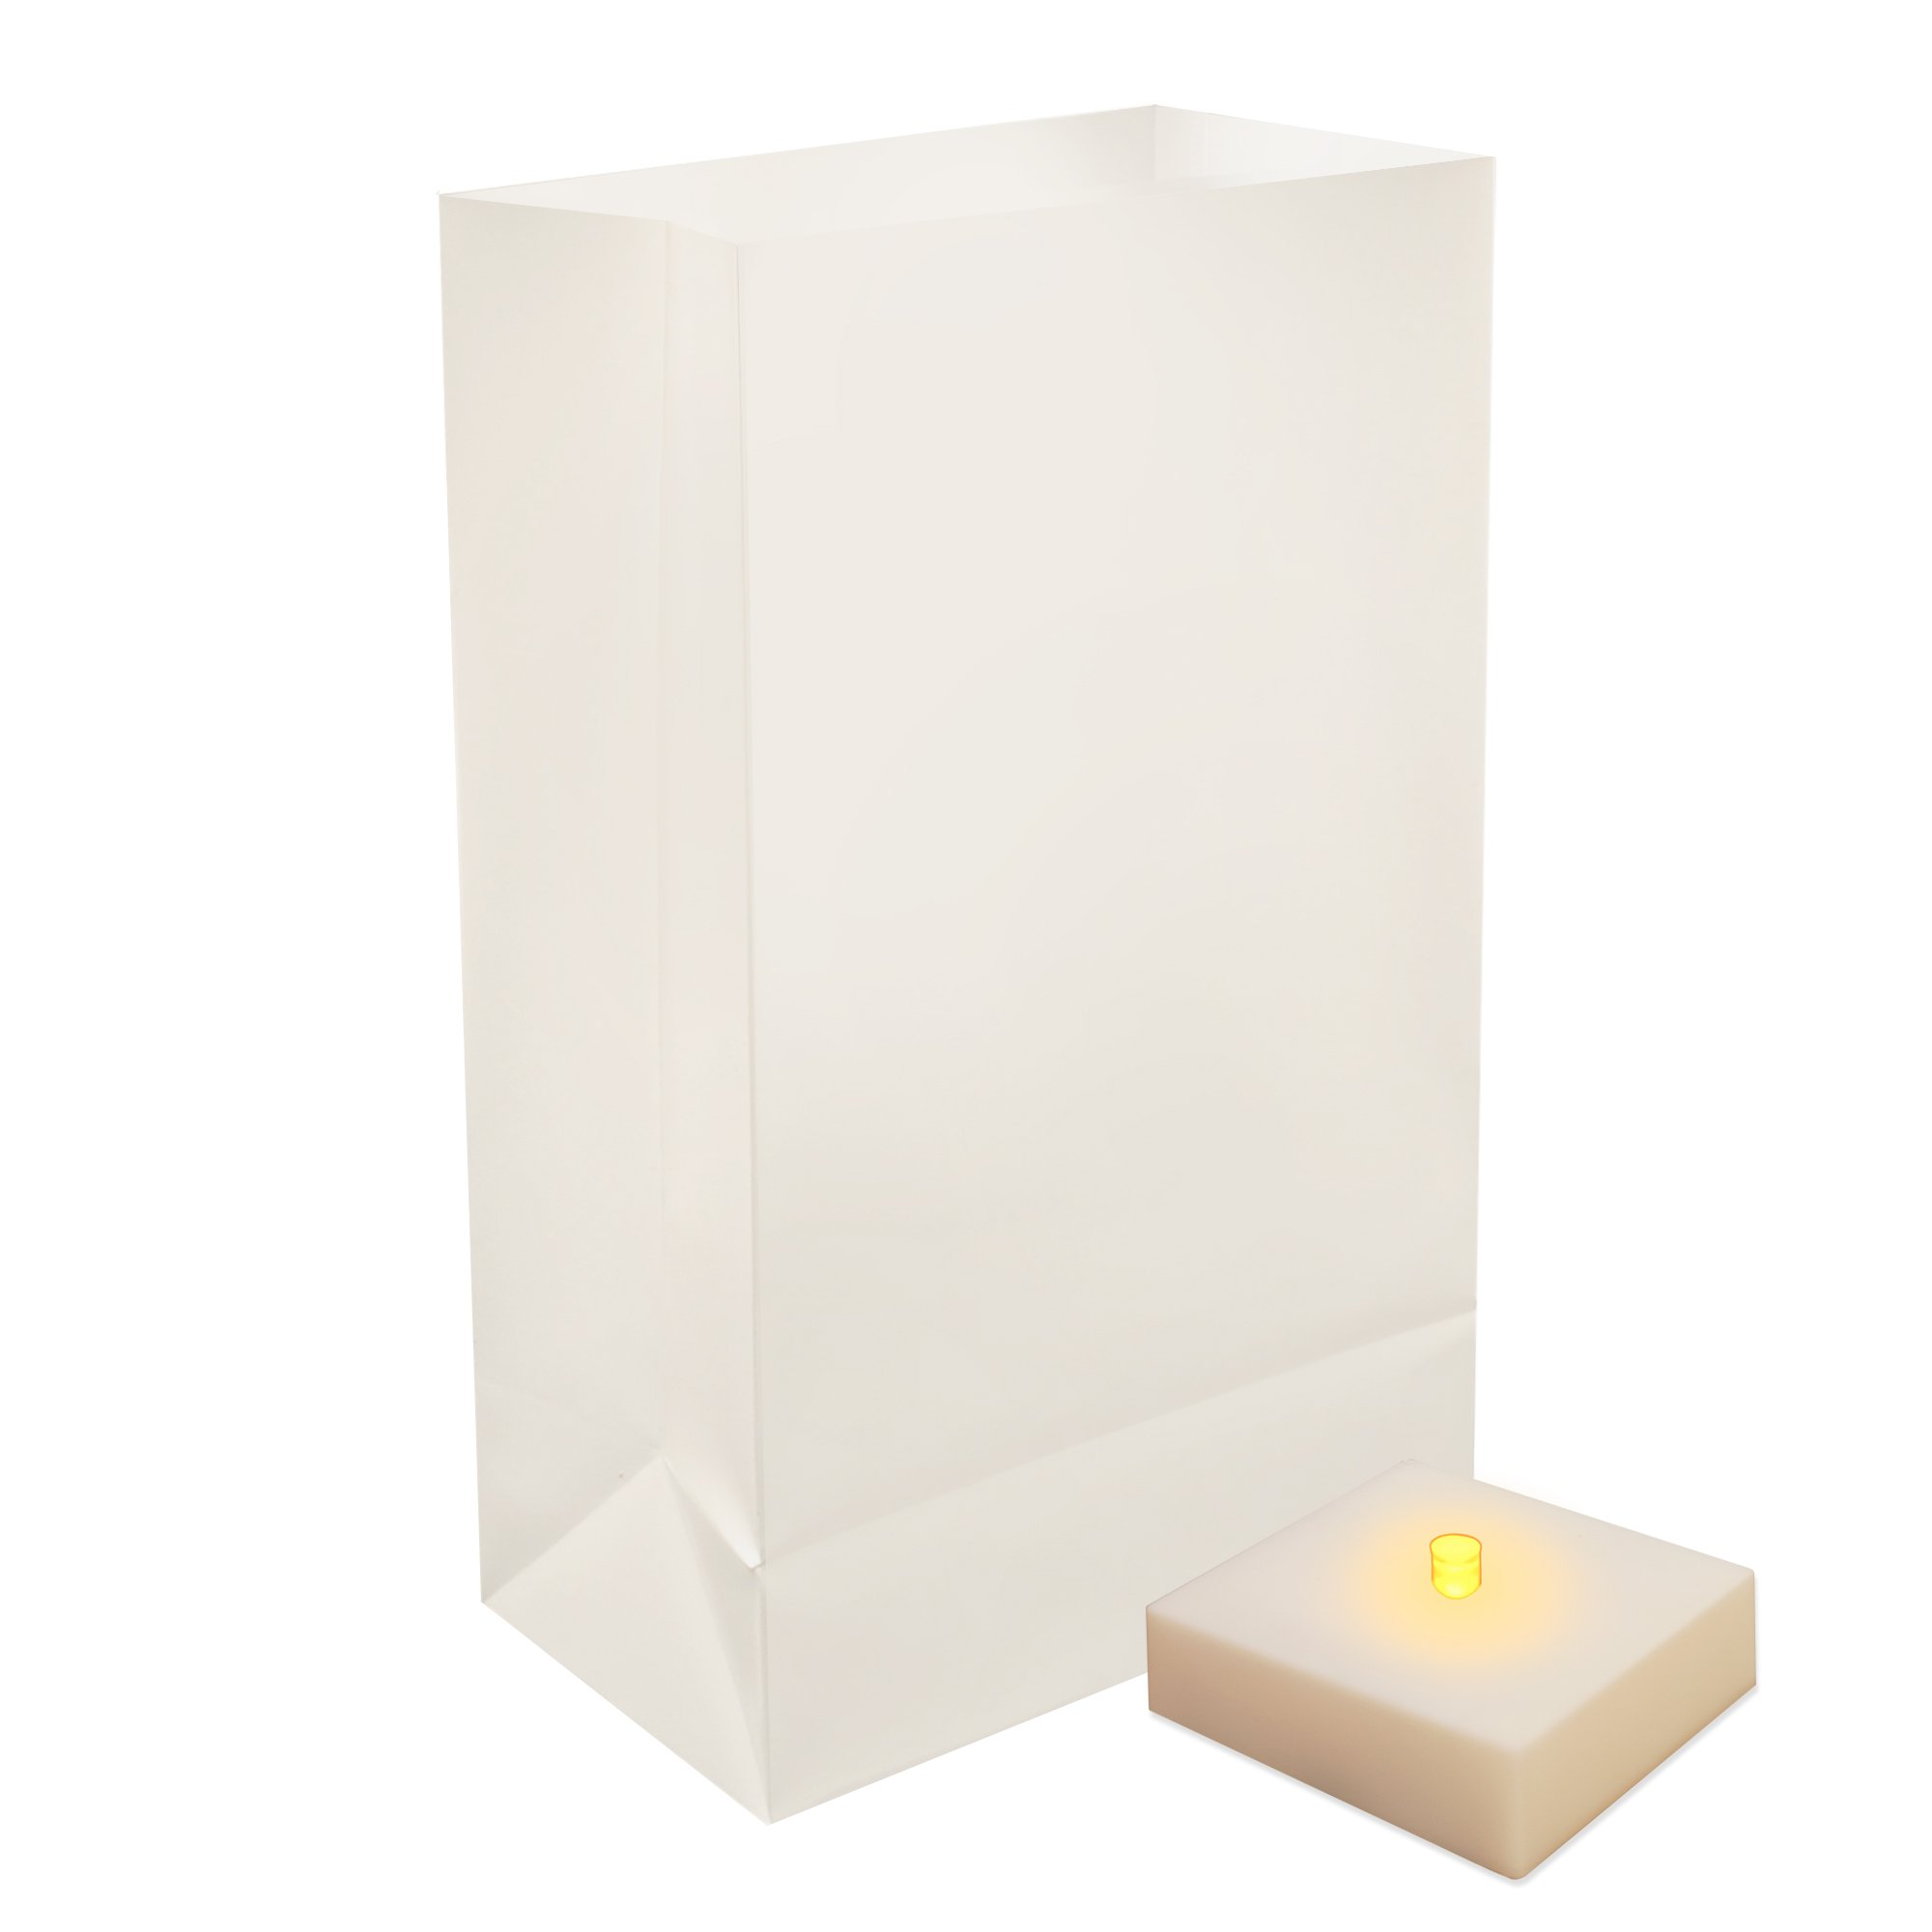 Lumabase 77006 6 Count Battery Operated Luminaria Kit with Timer, White by Lumabase